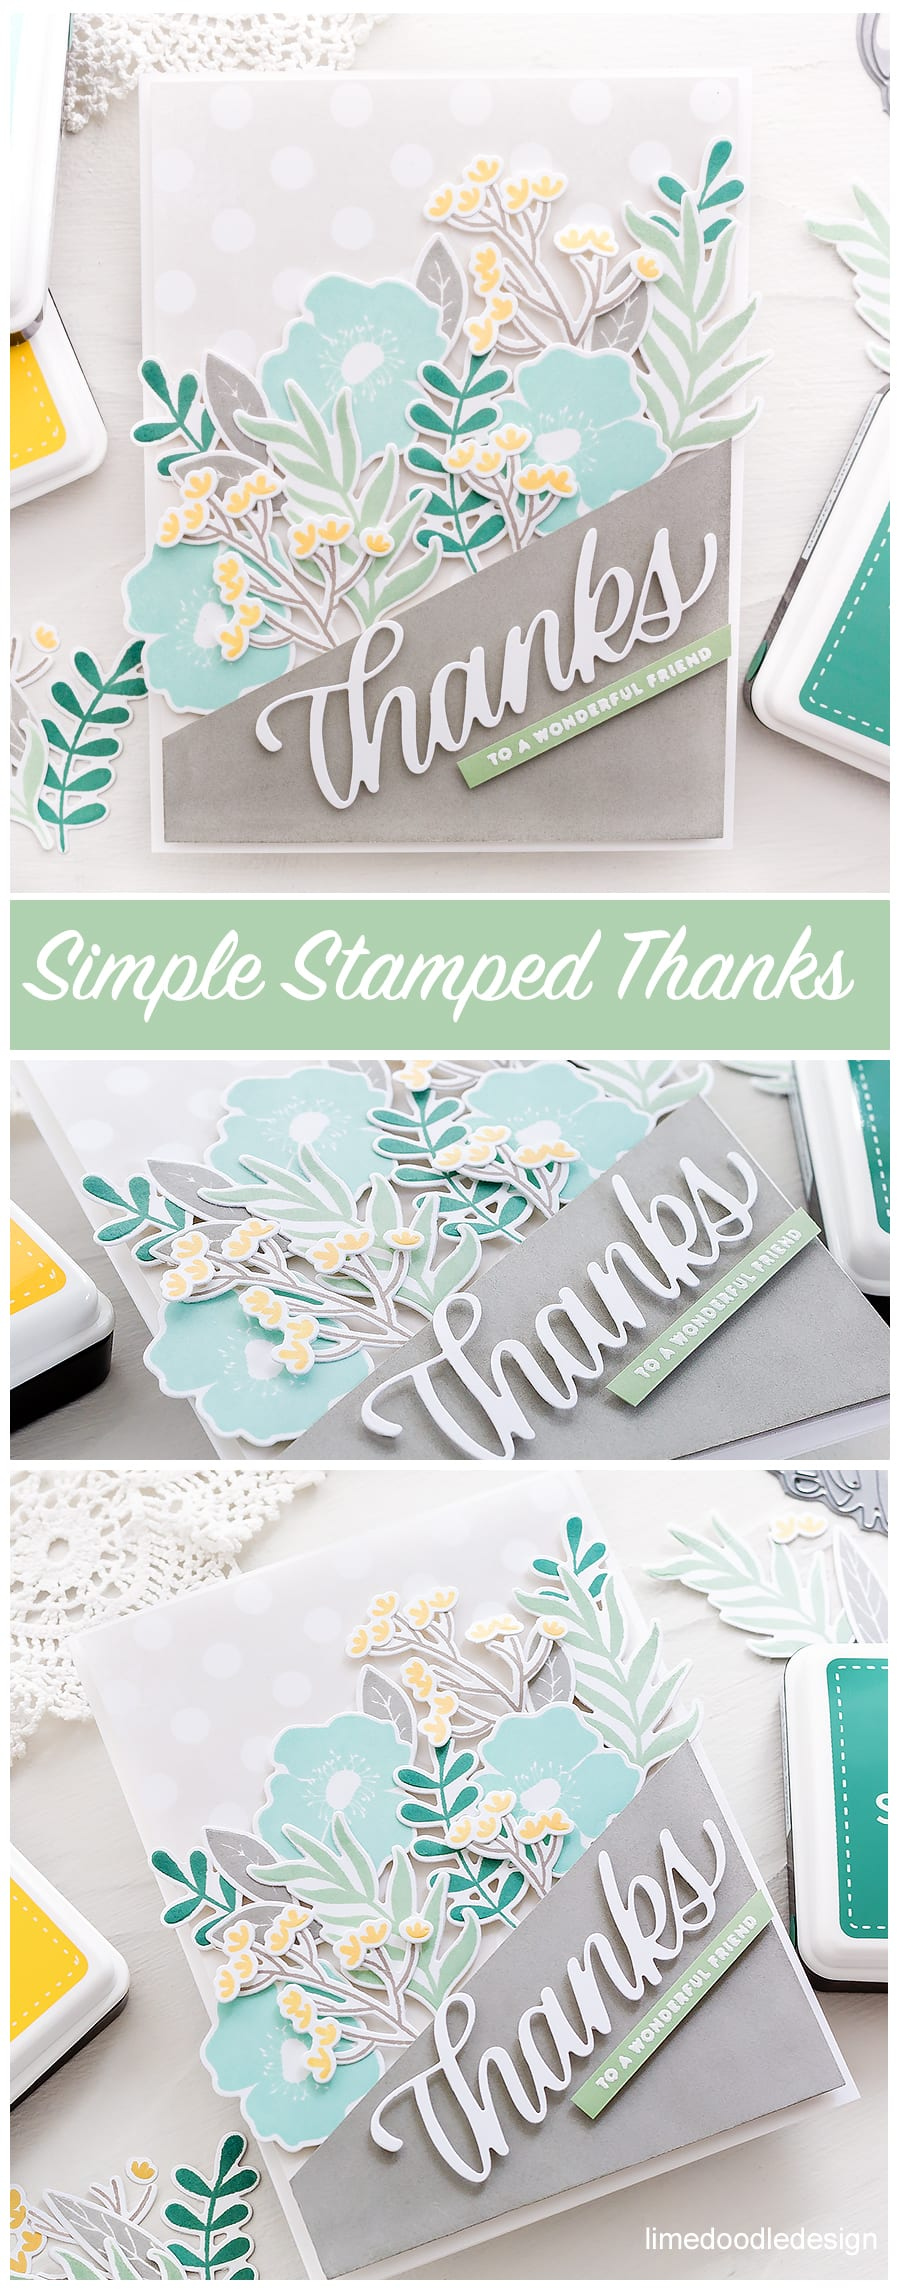 Simply stamped and die cut floral thanks to a wonderful friend, handmade card by Debby Hughes. Find out more here: http://limedoodledesign.com/2018/03/simply-stamped-die-cut-floral-thanks/